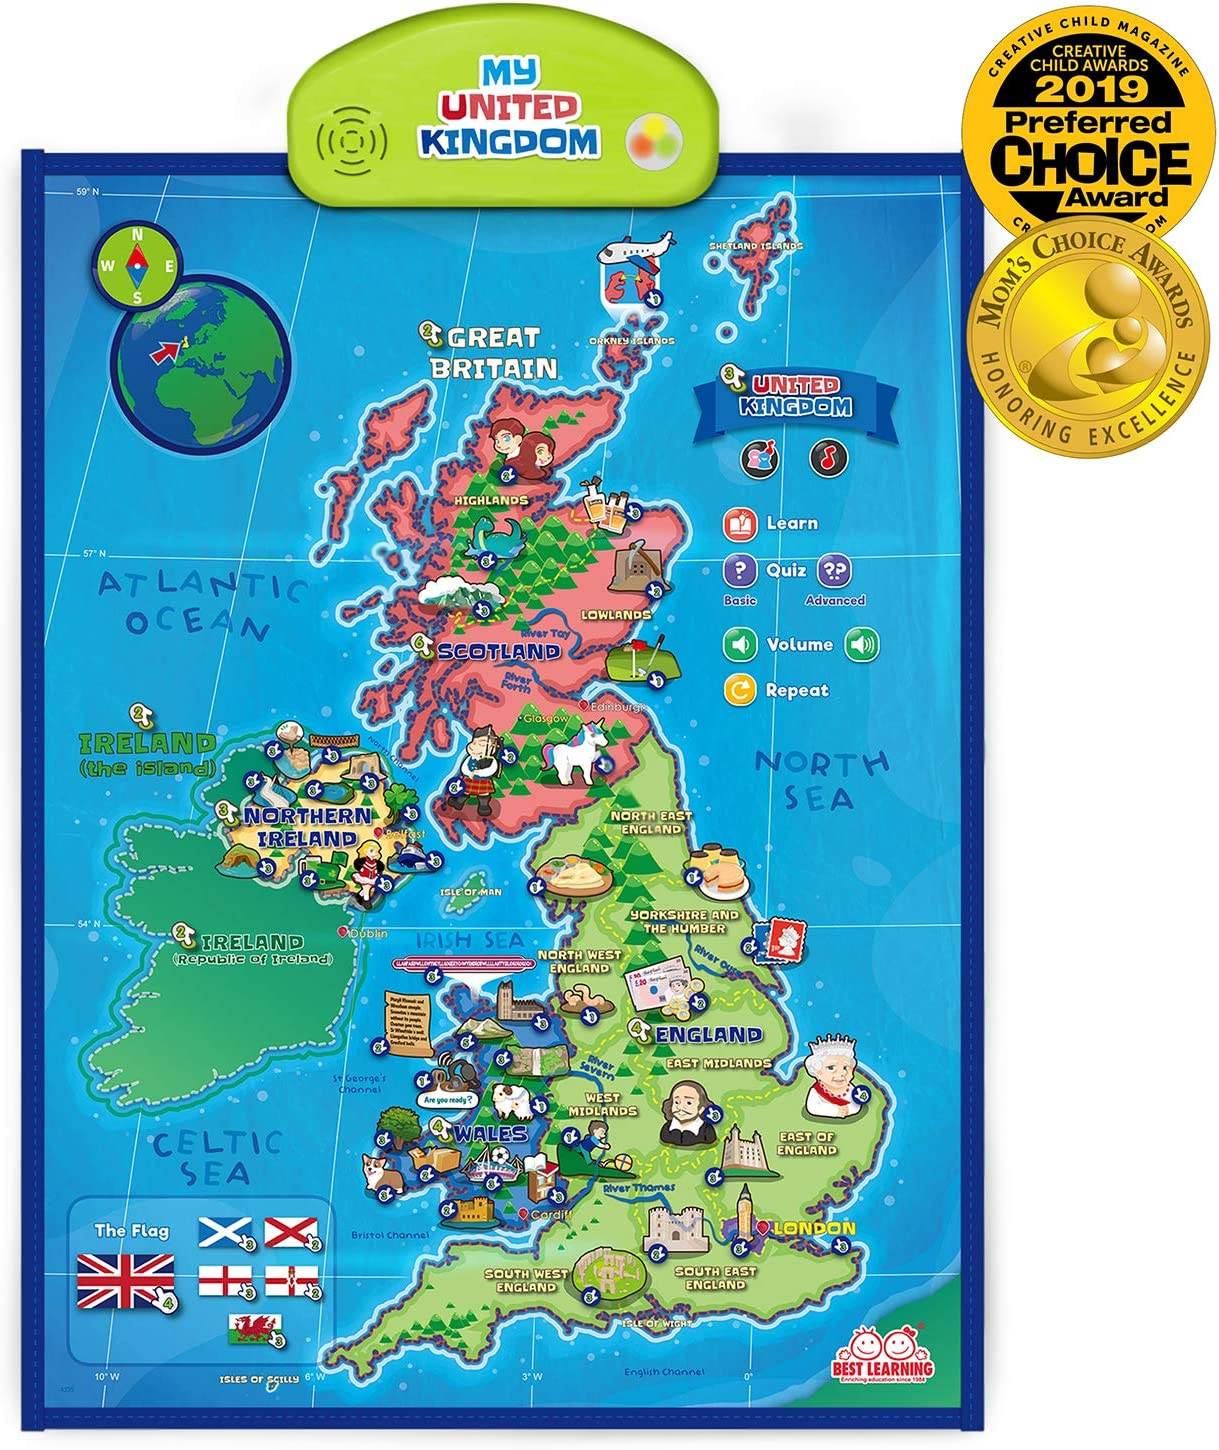 uk map for kids Best Learning I Poster My United Kingdom Interactive Map